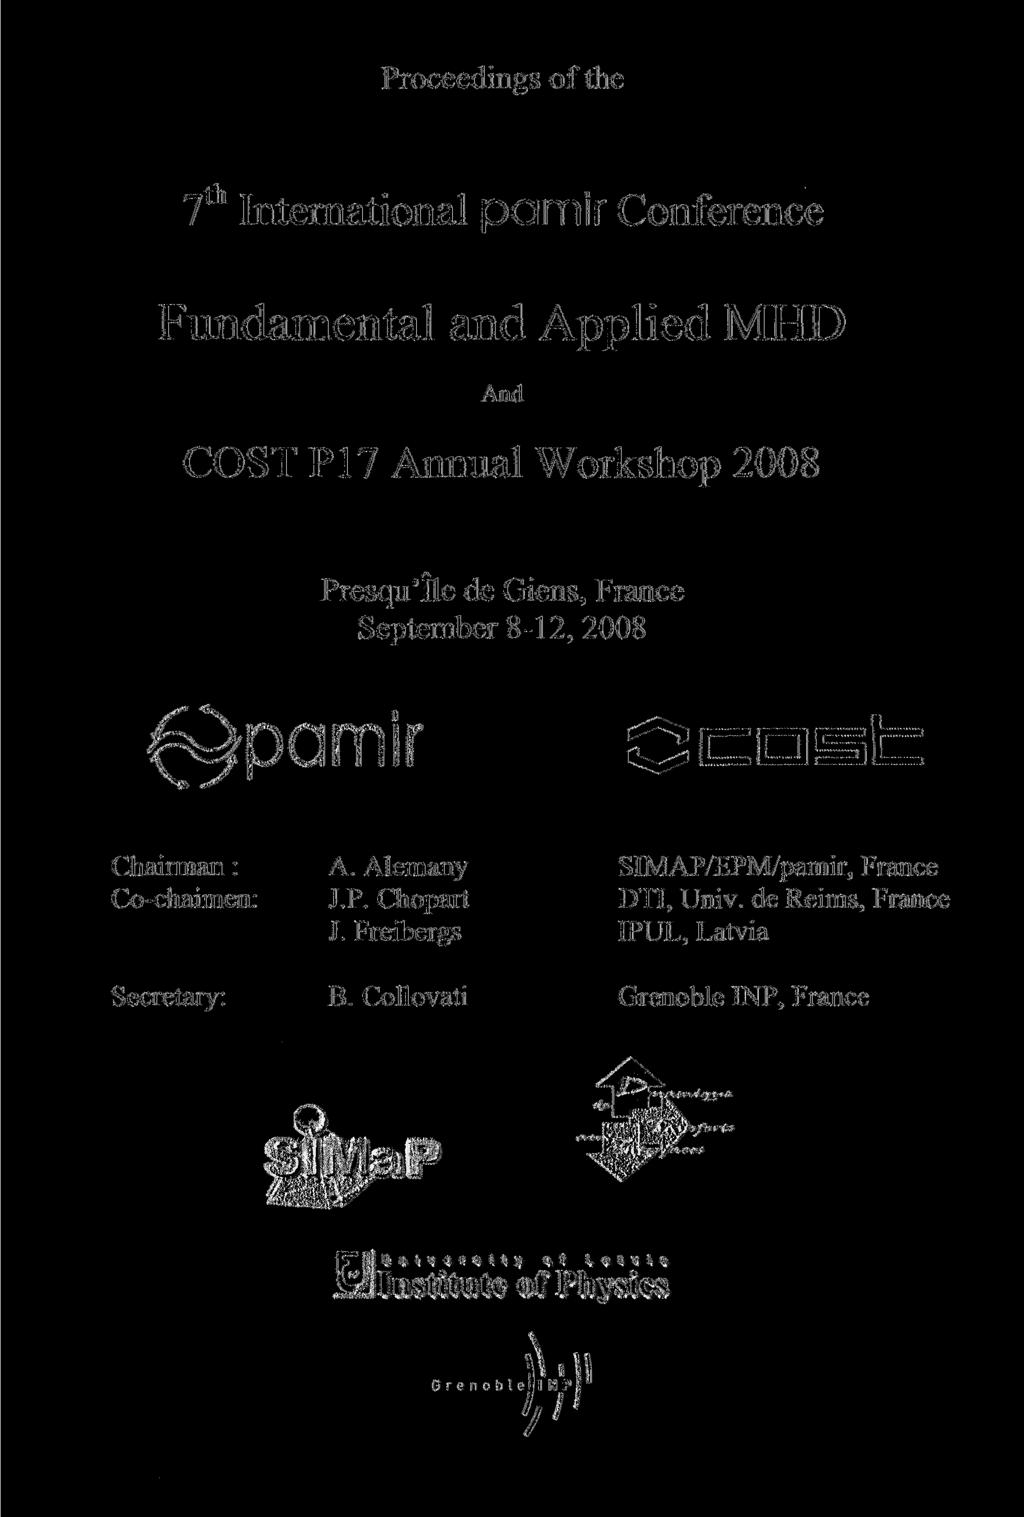 Proceedings of the 7th 7 International pamir Conference Fundamental and Applied MHD And COST P17 Annual Workshop 2008 Presqu'Ile de Giens, France September 8-12, 2008 ^pamir Chairman : Co-chaimen: